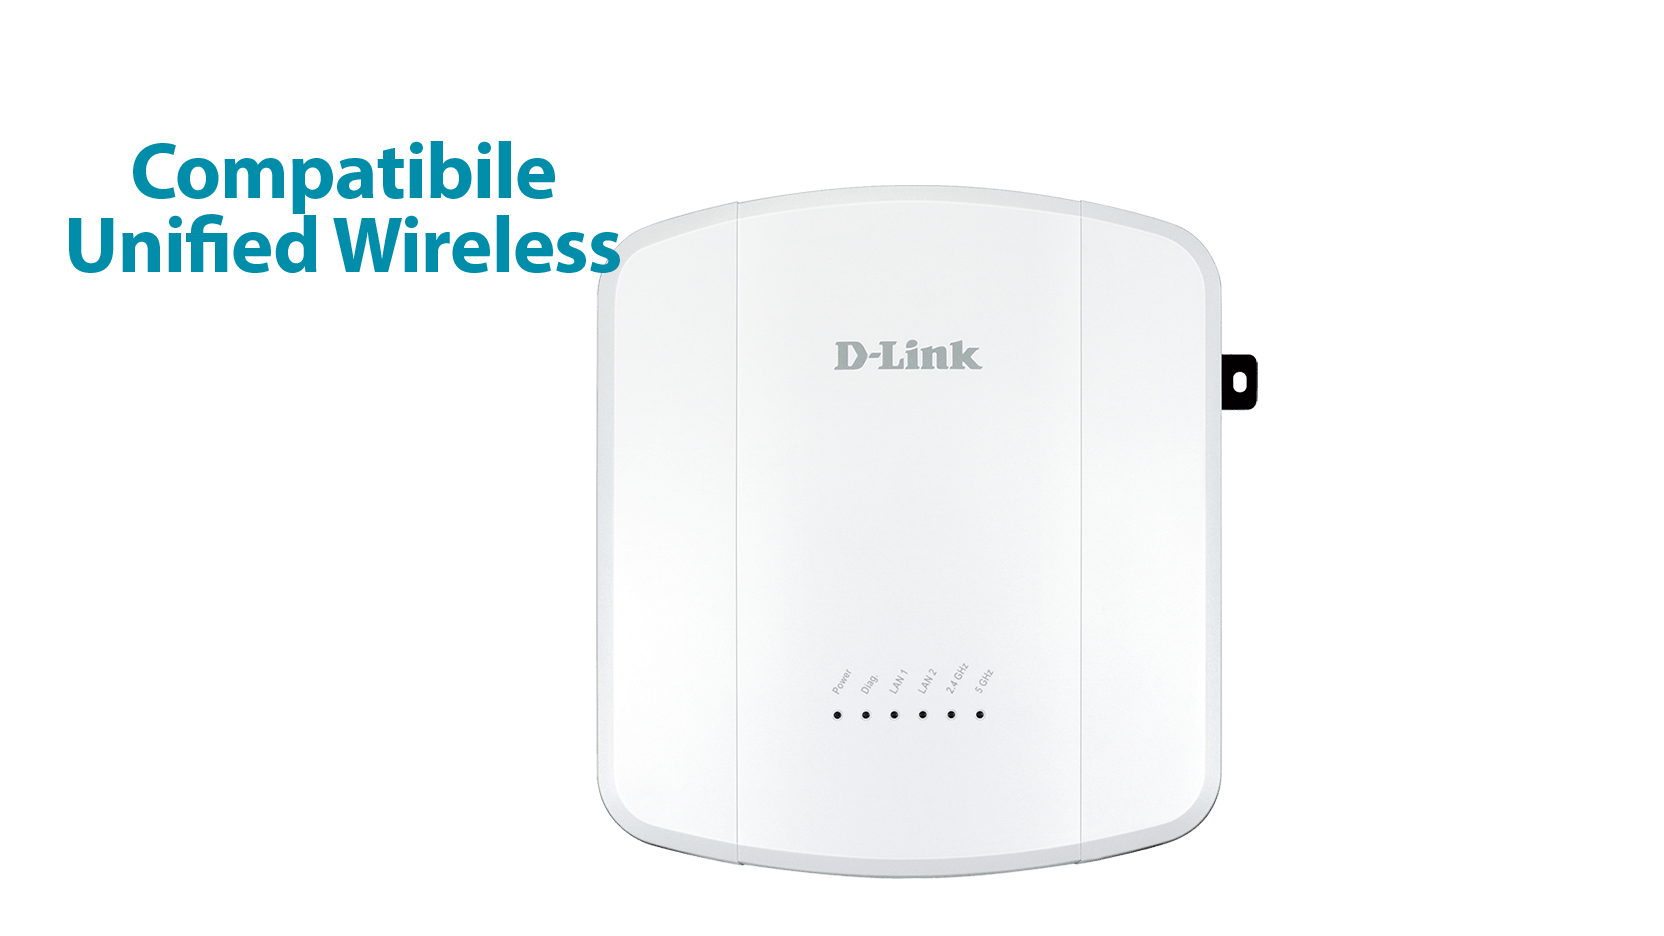 DWL 8610AP Compatibile Unified Wireless